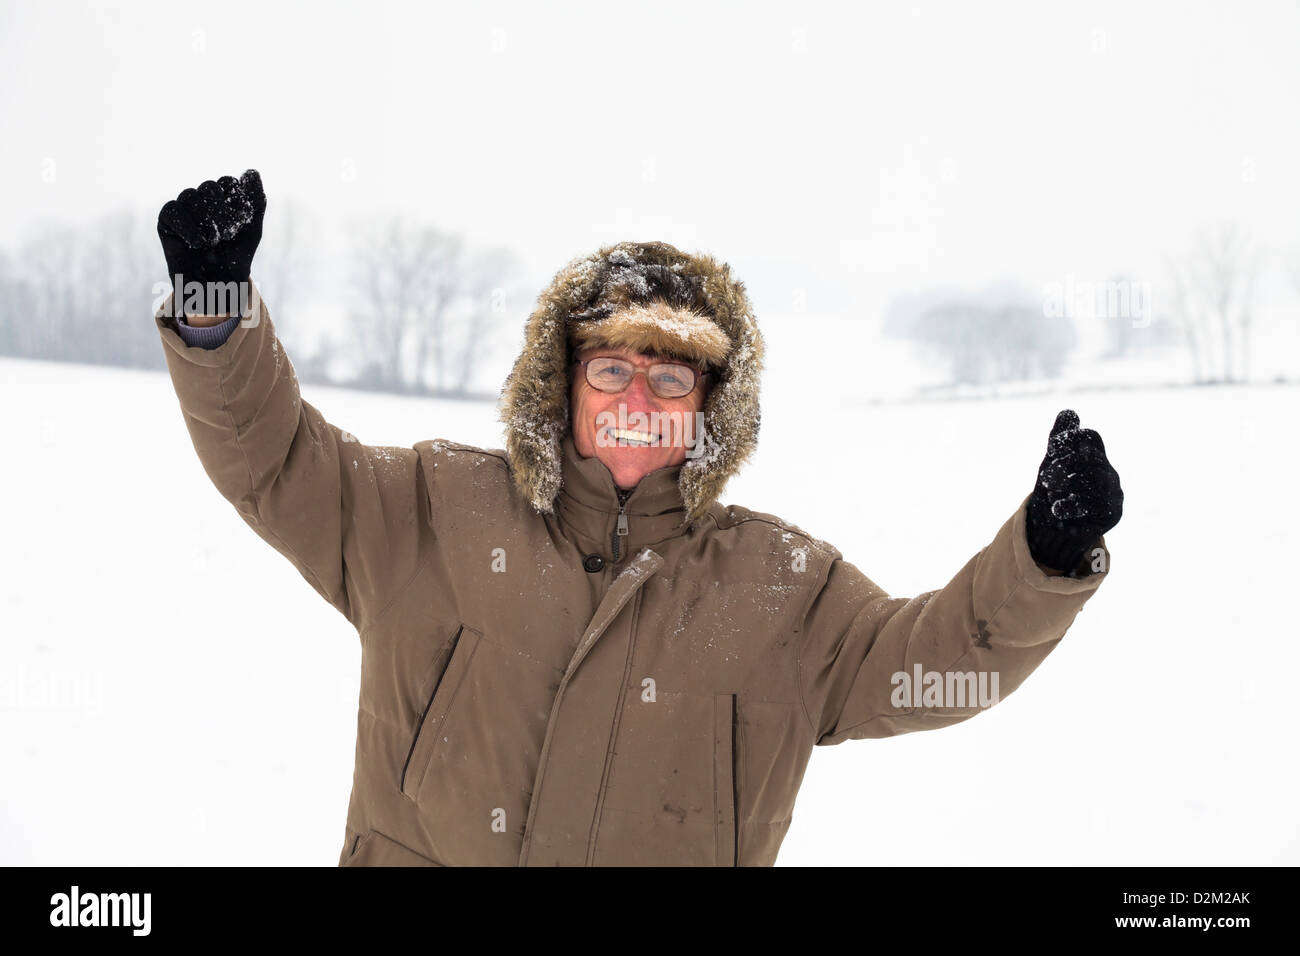 Happy ecstatic senior man enjoying snow and winter outdoors. - Stock Image